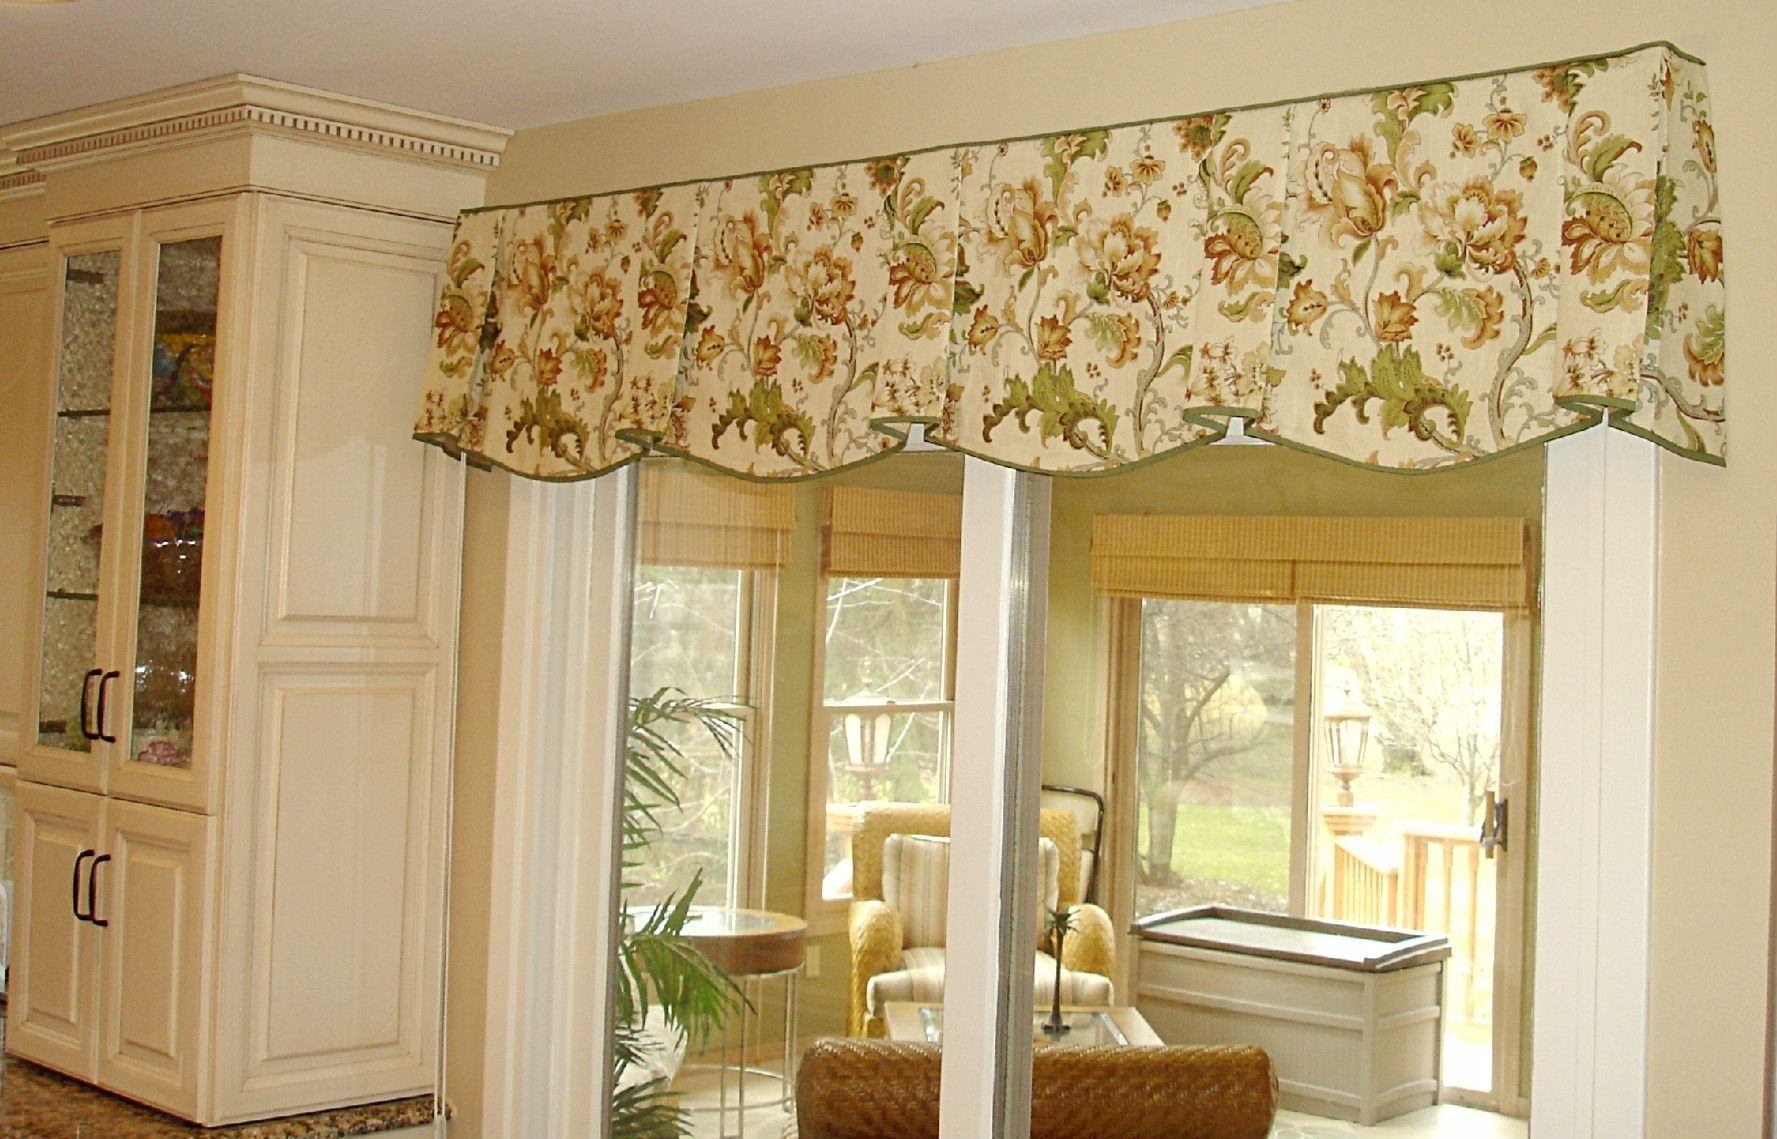 10 Stylish Valance Ideas For Large Windows the debate is on do i put a valance over the sliding glass door or 2020